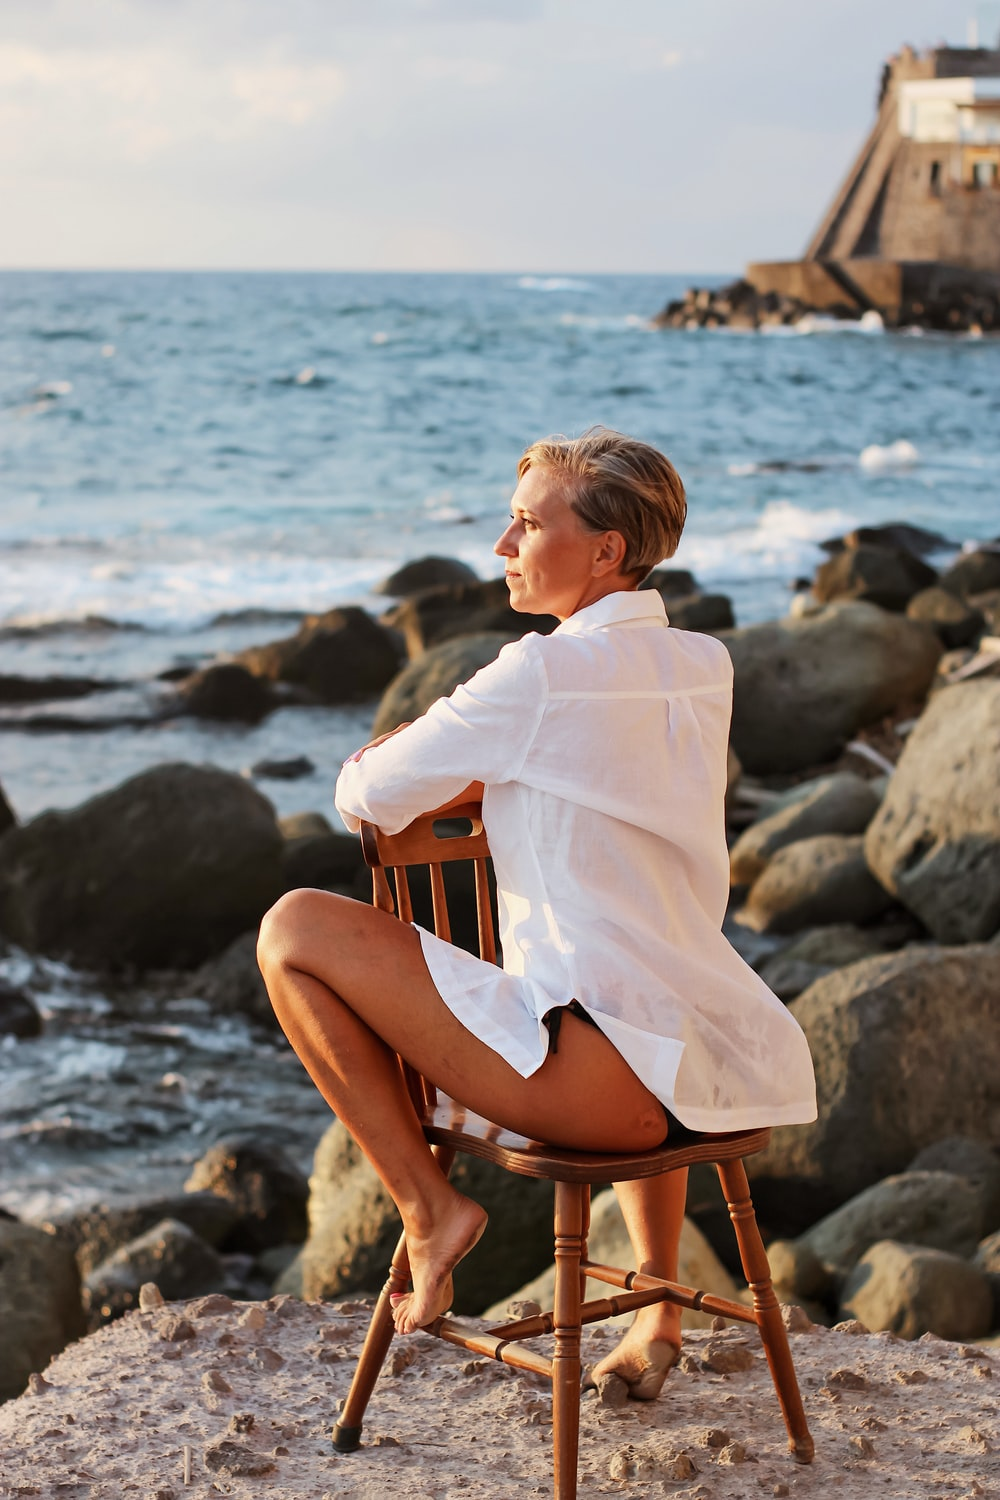 woman in white long sleeve shirt sitting on brown wooden chair on beach during daytime